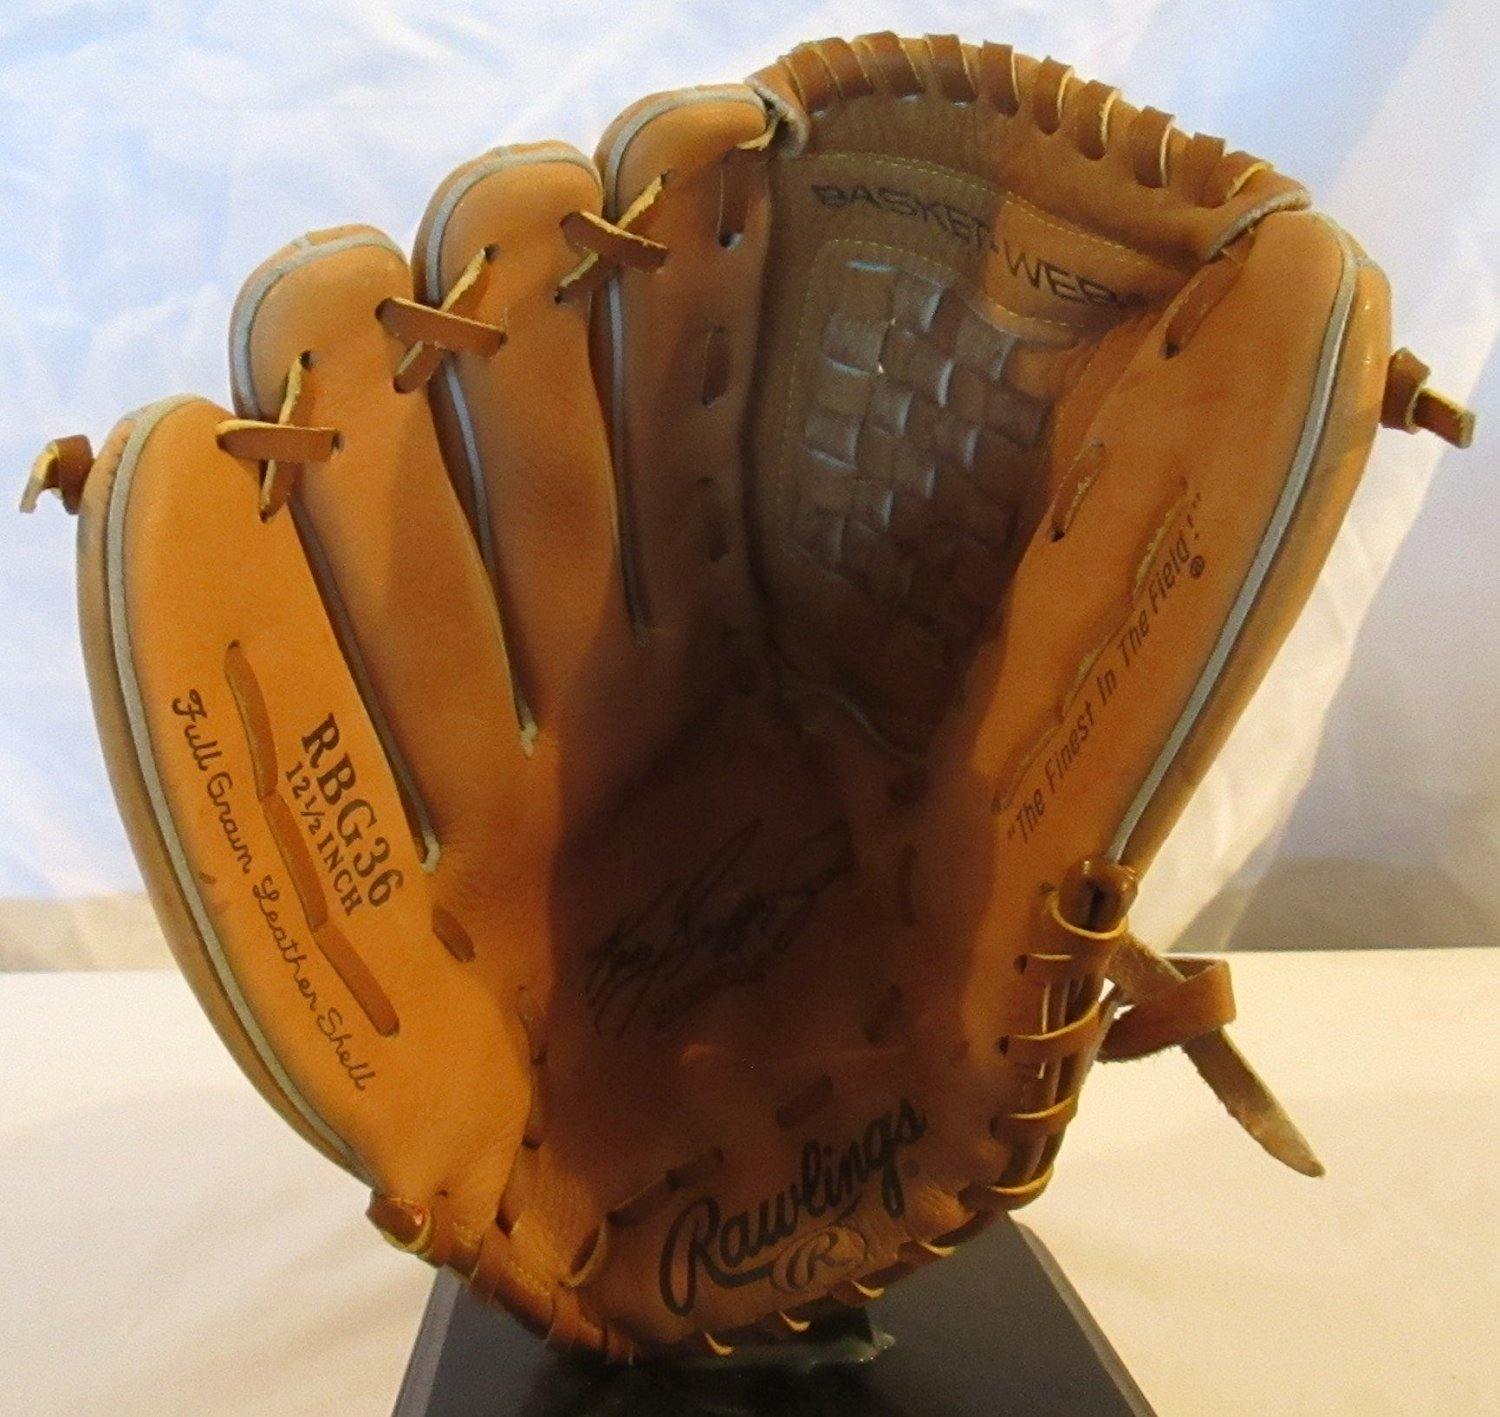 49ffdd03a5 Buy RAWLINGS KEN GRIFFEY JR. AUTOGRAPH MODEL BASEBALL GLOVE - 12 1/2 ...